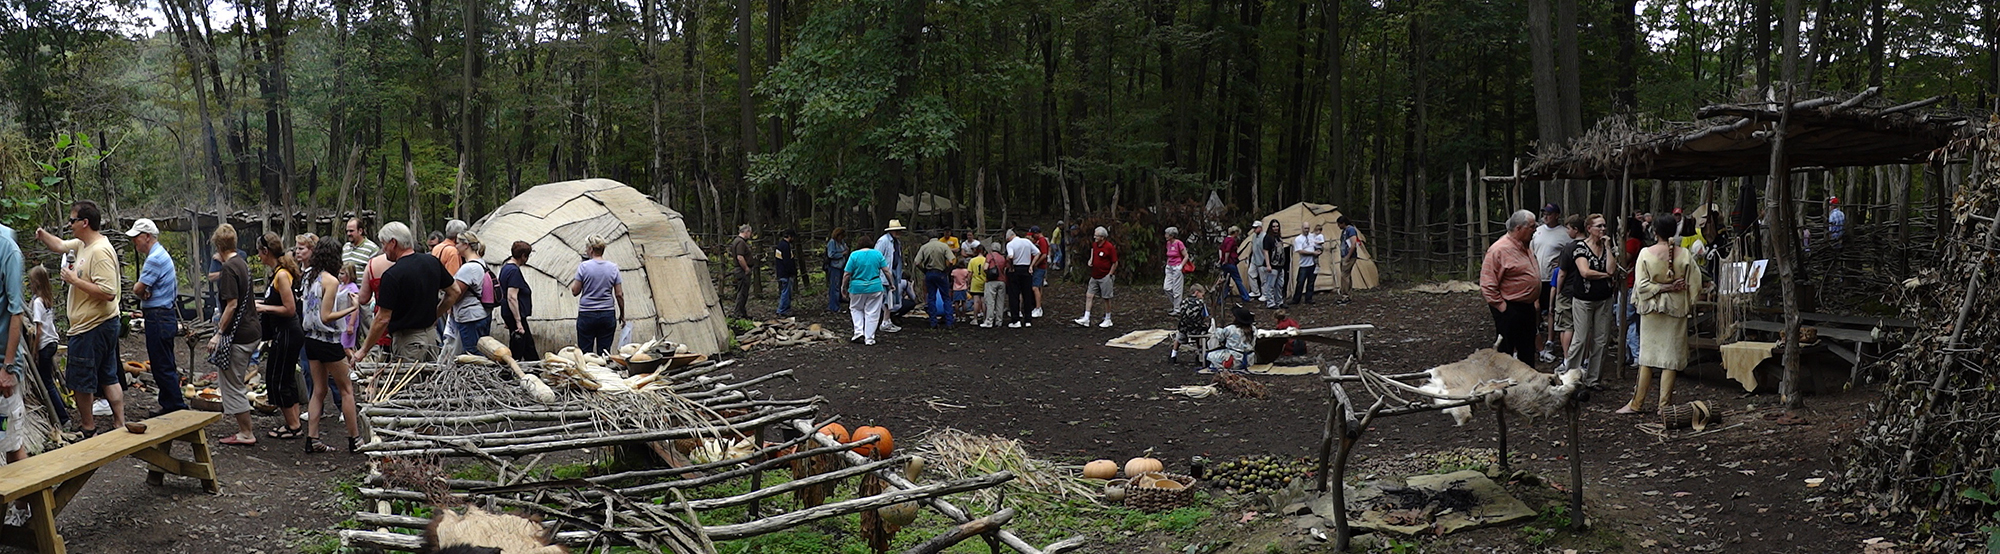 The Monongahela Indian Village during the annual Frontier Heritage Weekend at Meadowcroft.